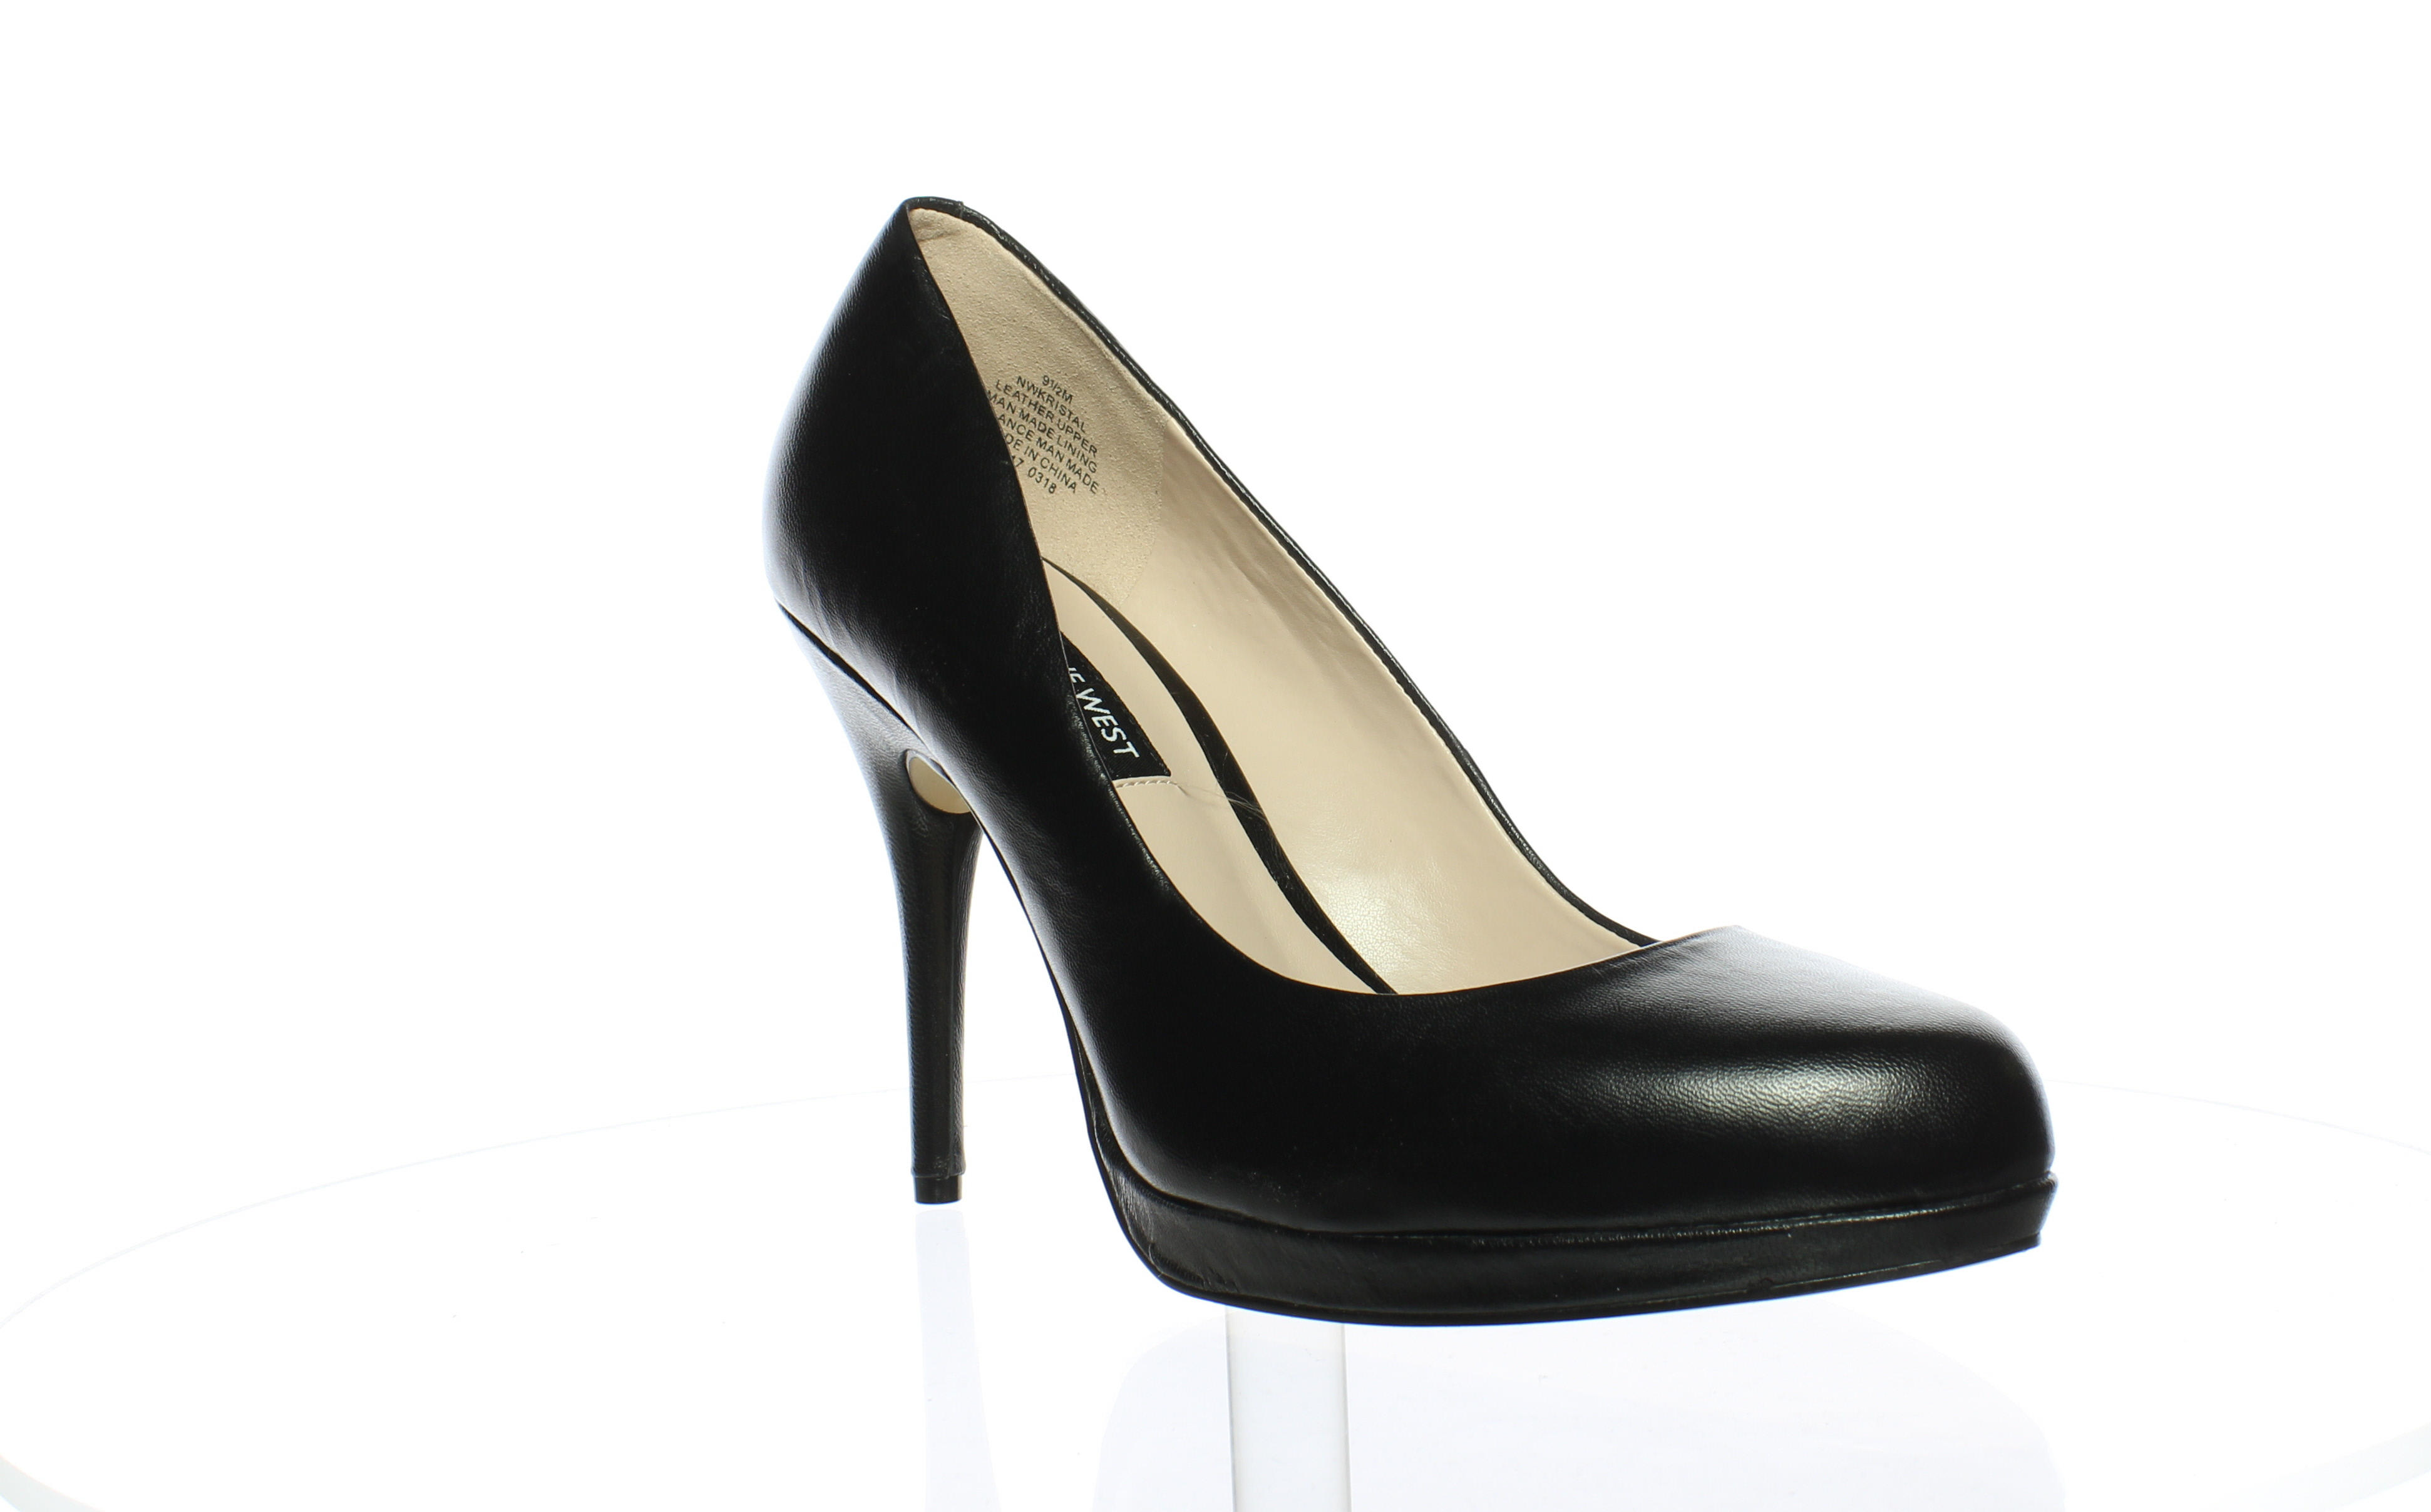 Nine West Womens Kristal Leather Black Leather 9.5 Pumps Size 9.5 Leather (15514) 7a7985